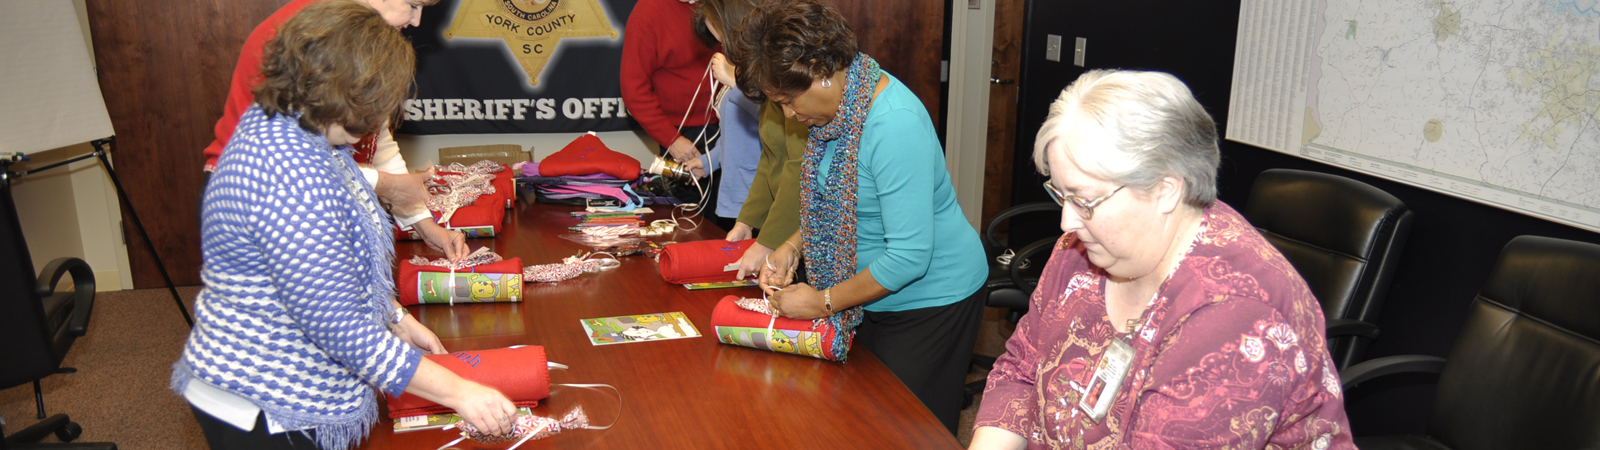 Annual Christmas event at the Children's Attention Home